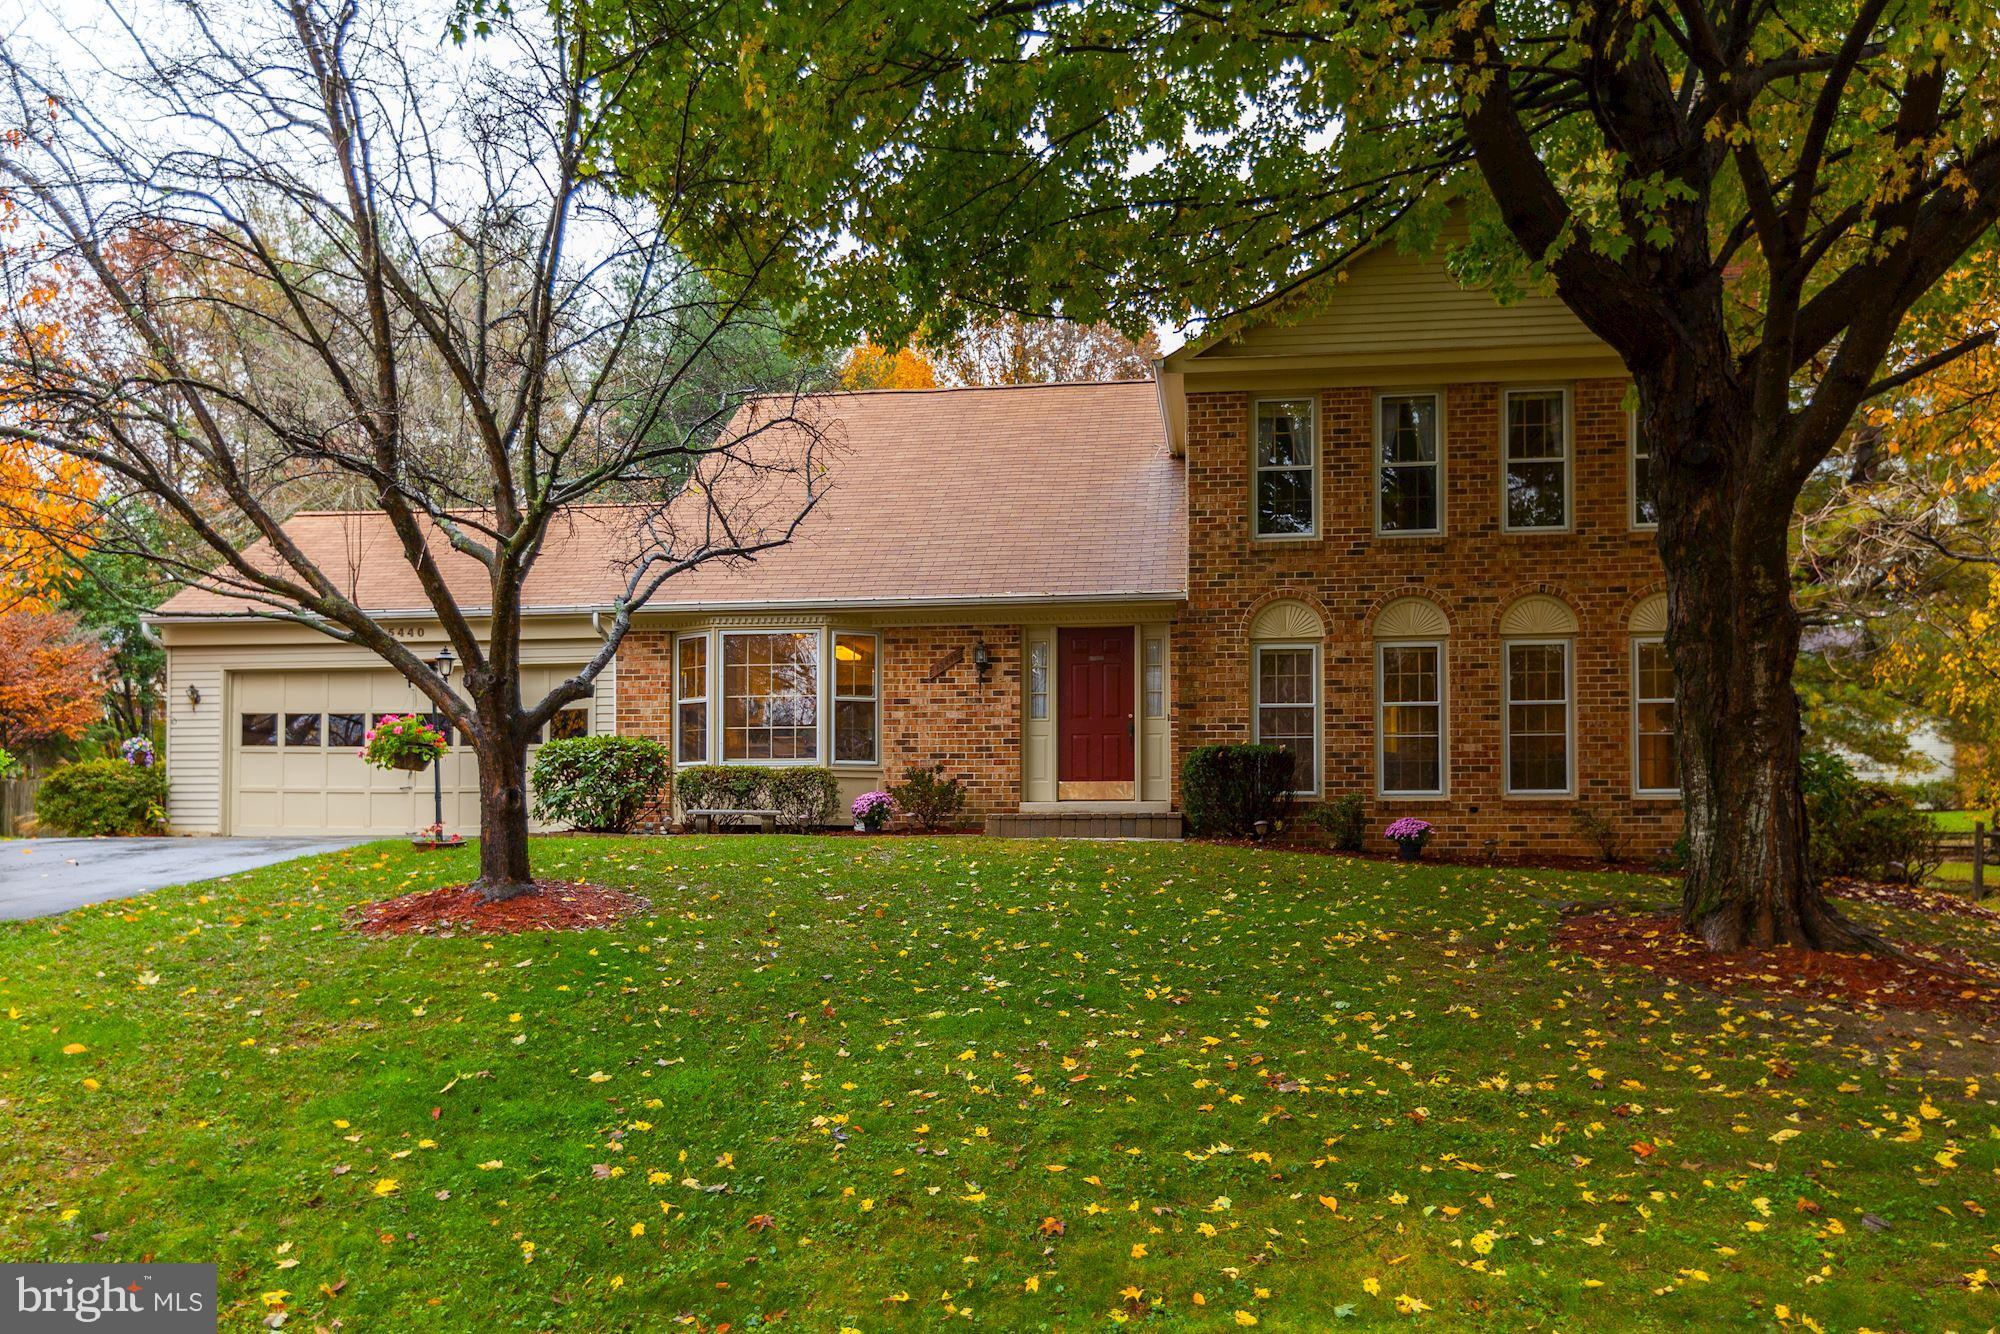 15440 NARCISSUS WAY, ROCKVILLE, MD 20853